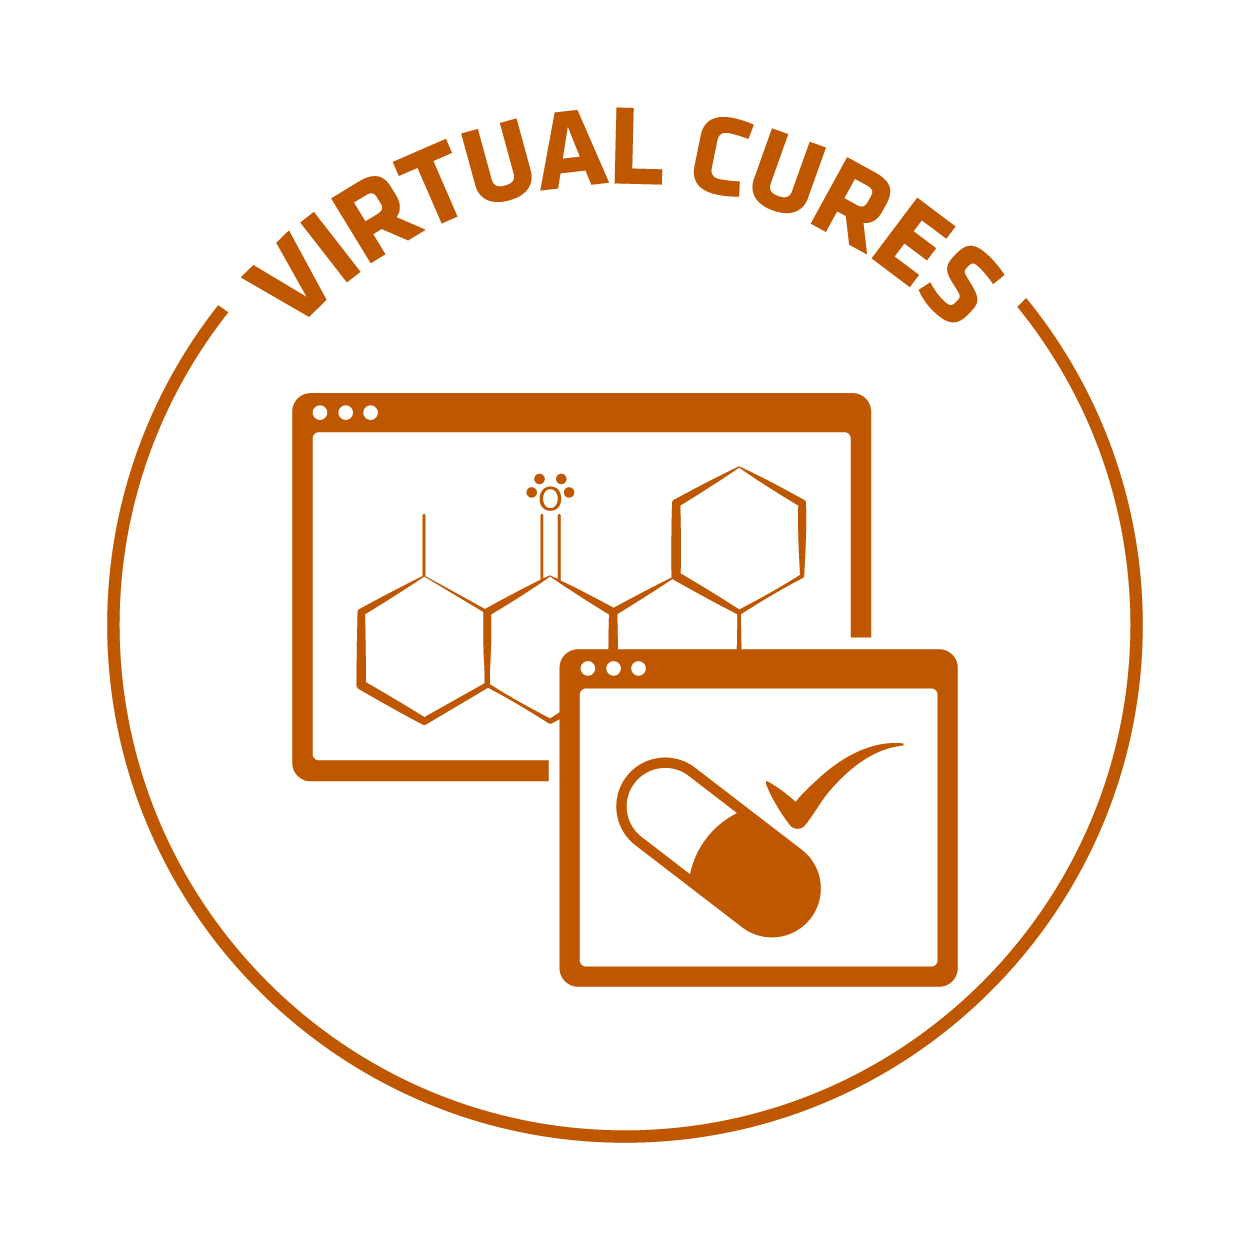 virtual cures RGB orange nickname